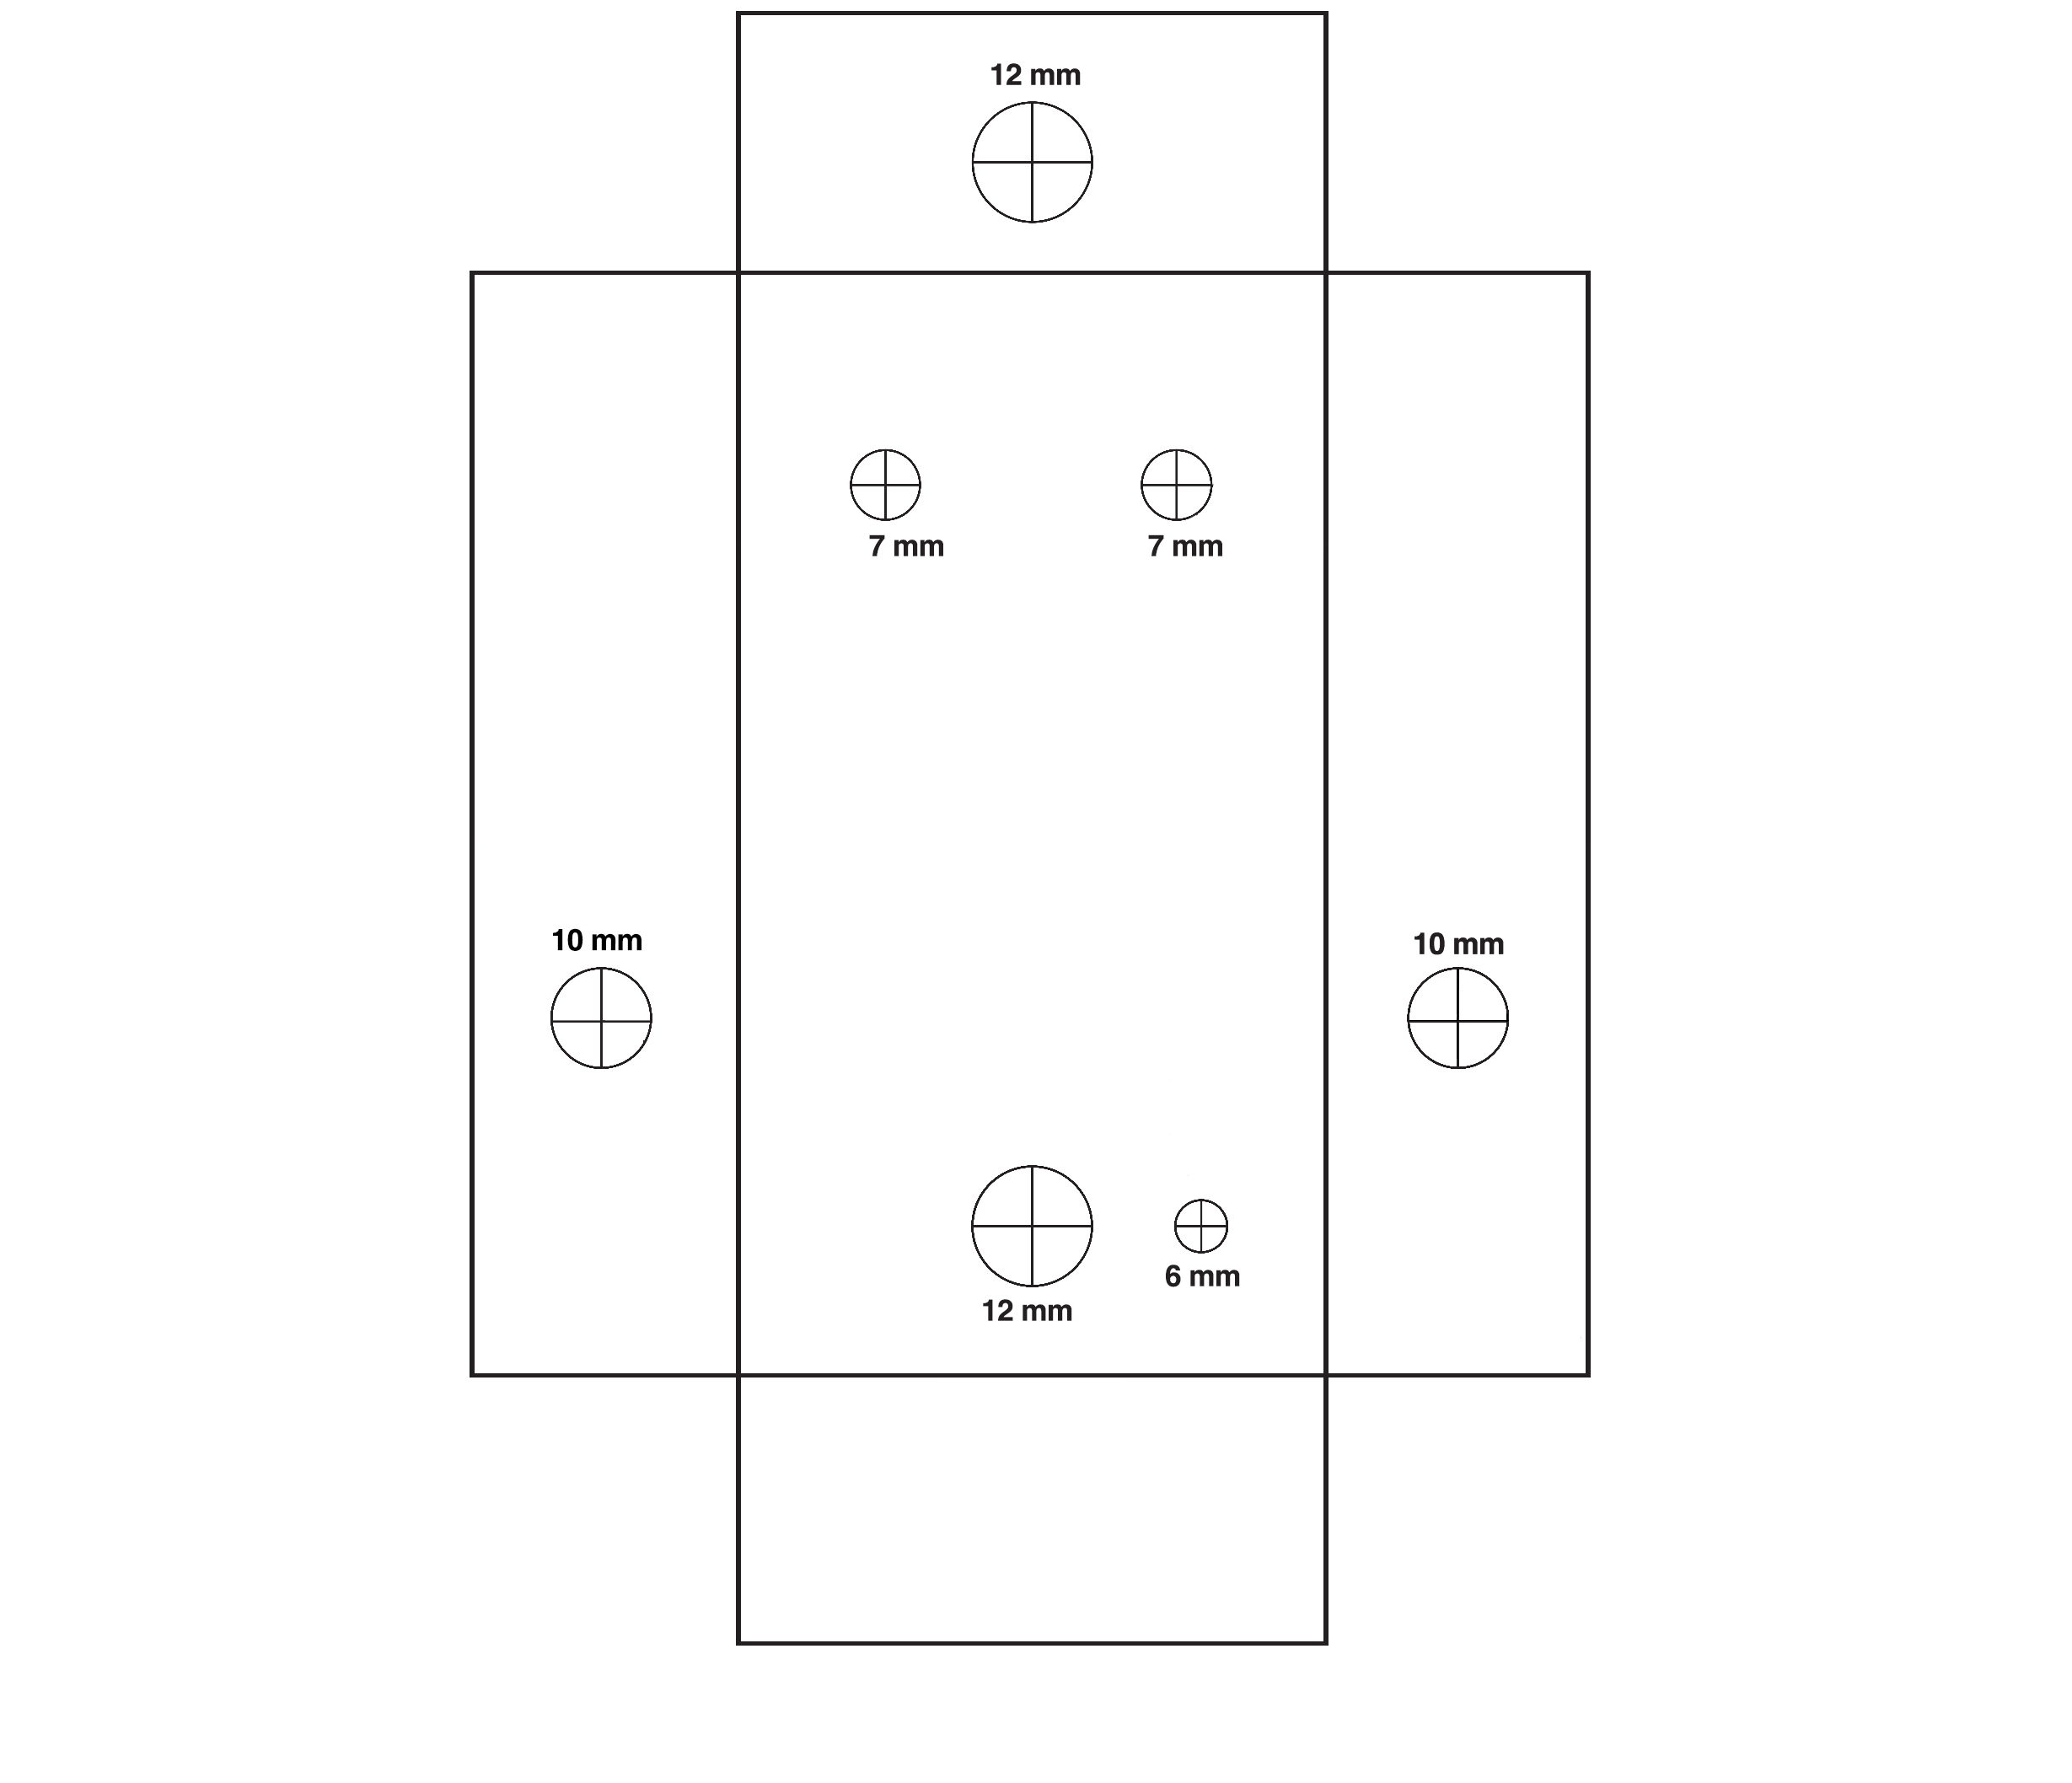 Overdrive Guitar Effects Pedal Bantam Tools 3pdt Wiring Diagram Start By Printing Out The 1590b Enclosure Template